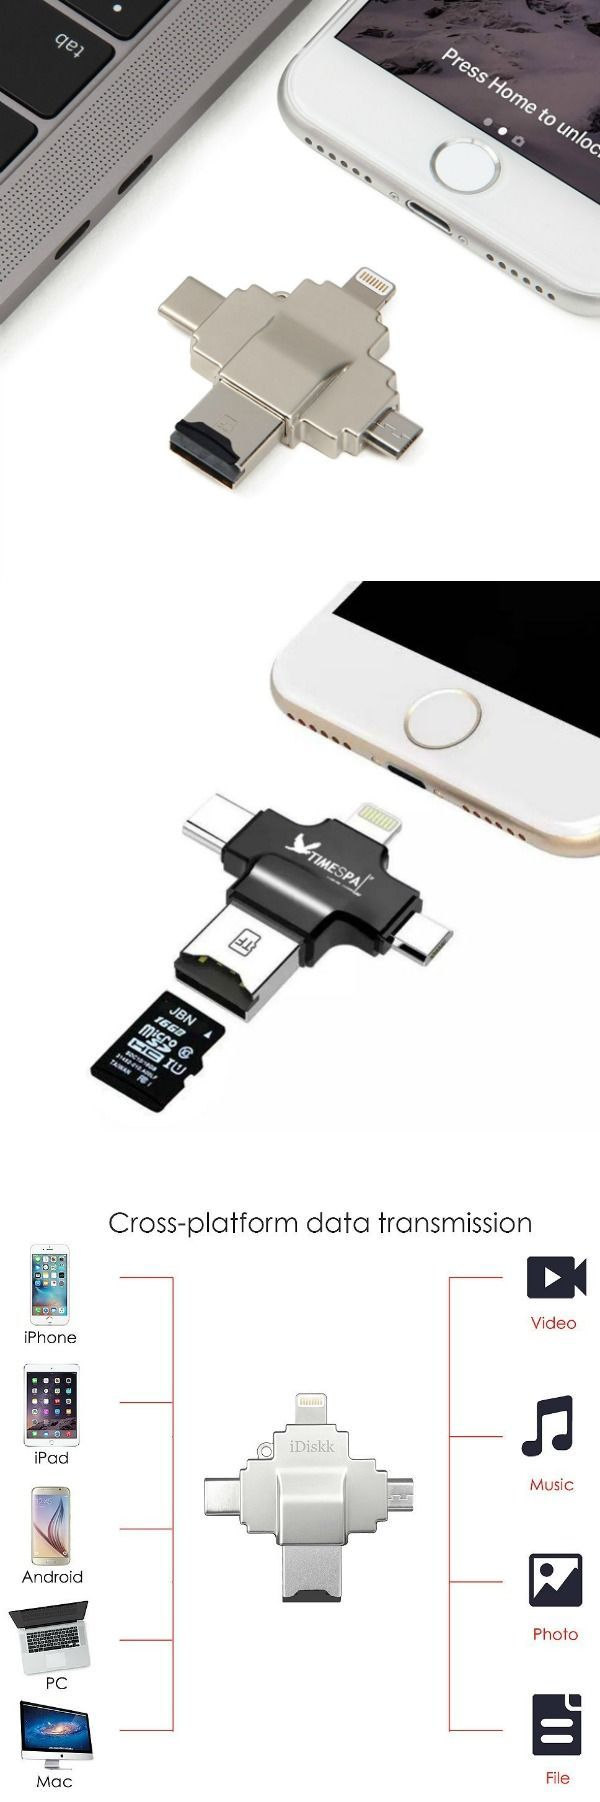 how to transfer photos from iphone to usb flash drive